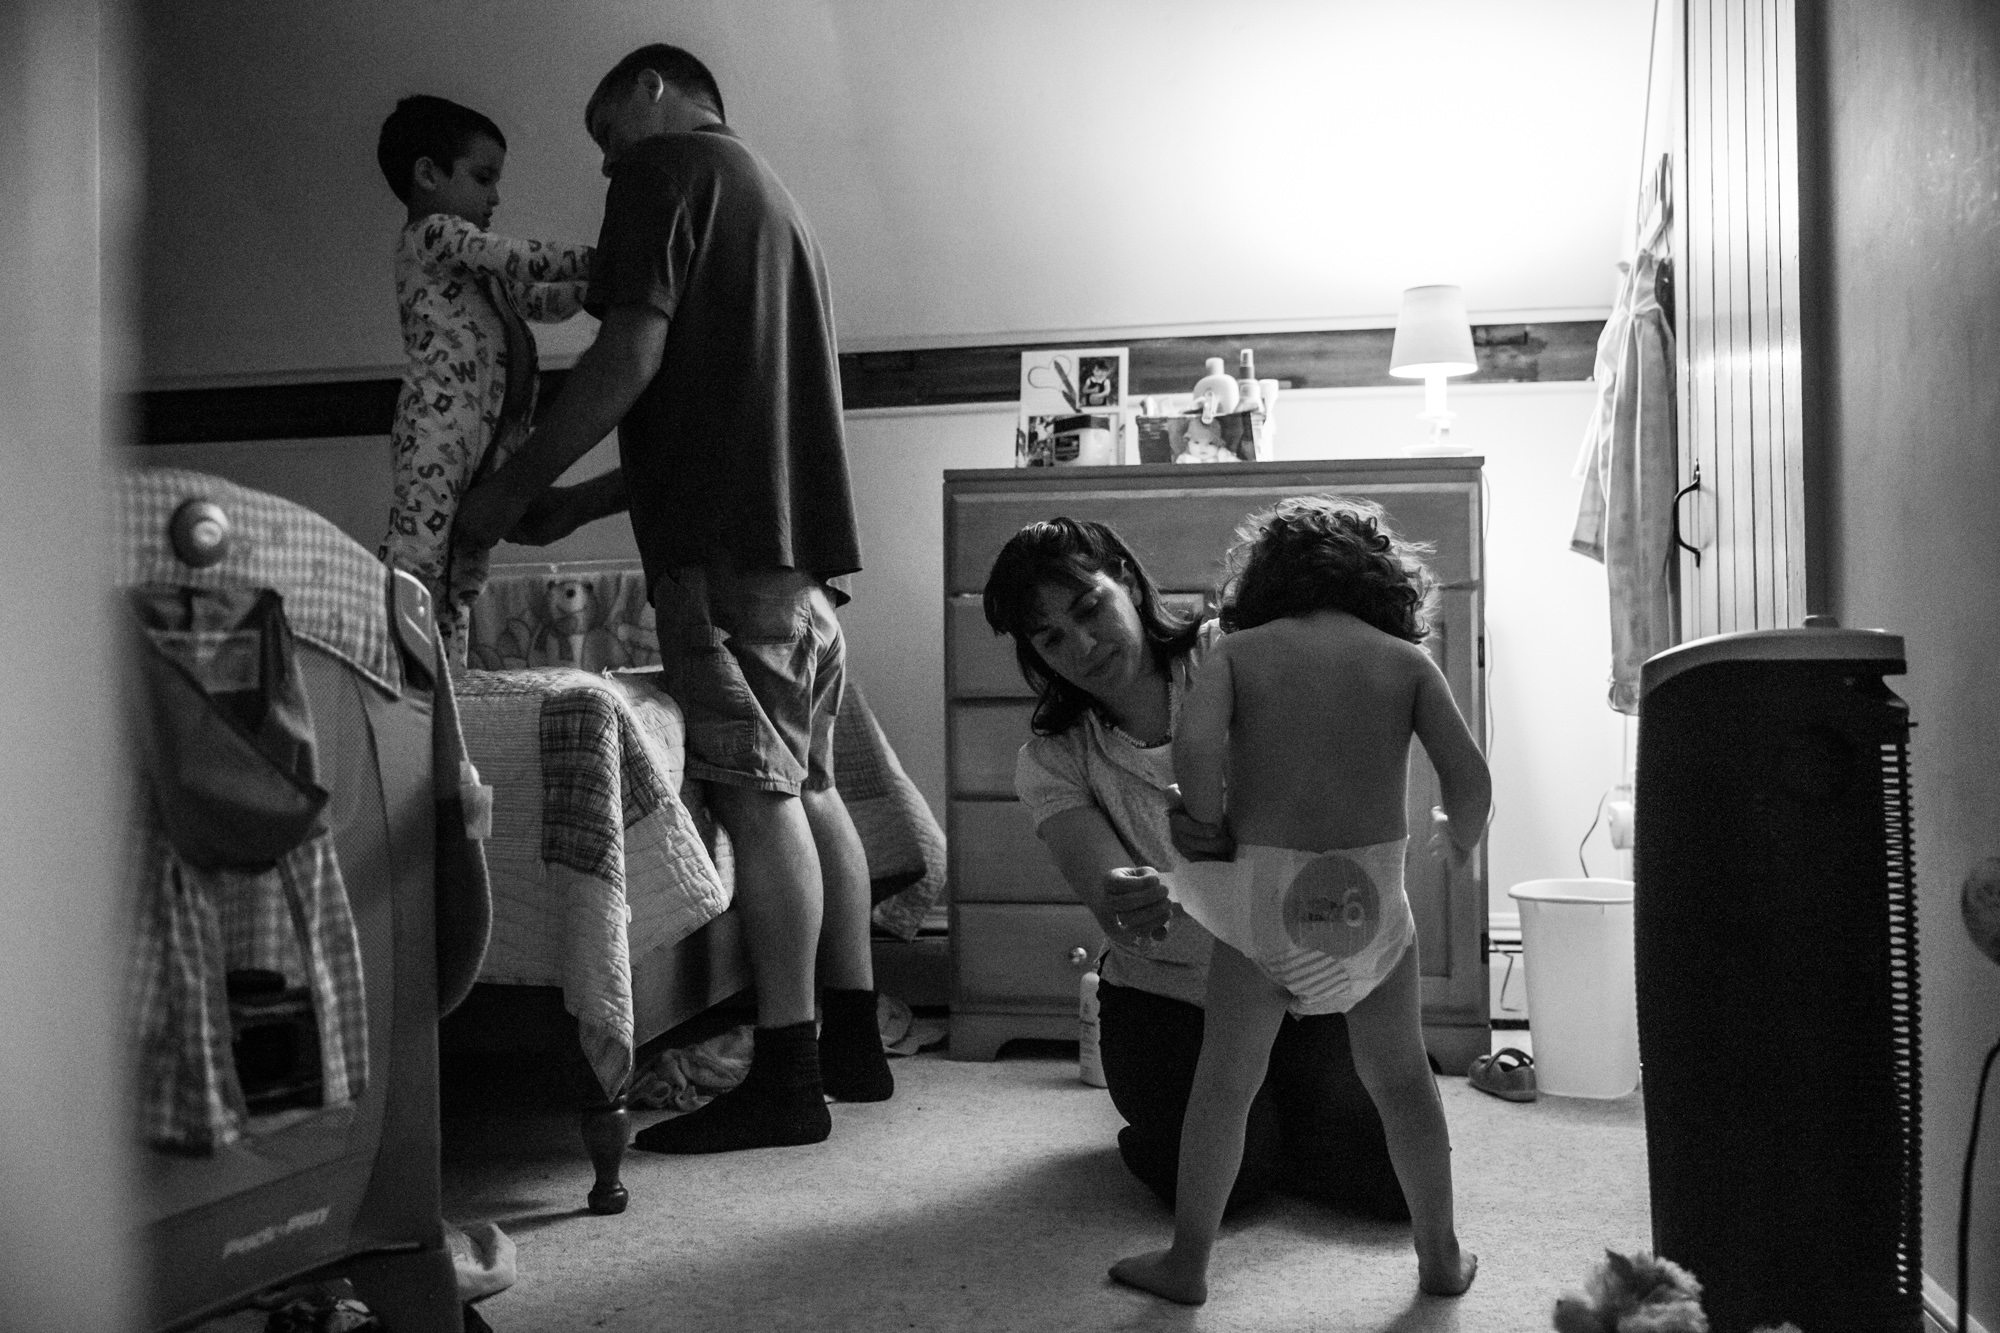 Man dresses boy in pajamas while woman puts diaper on girl